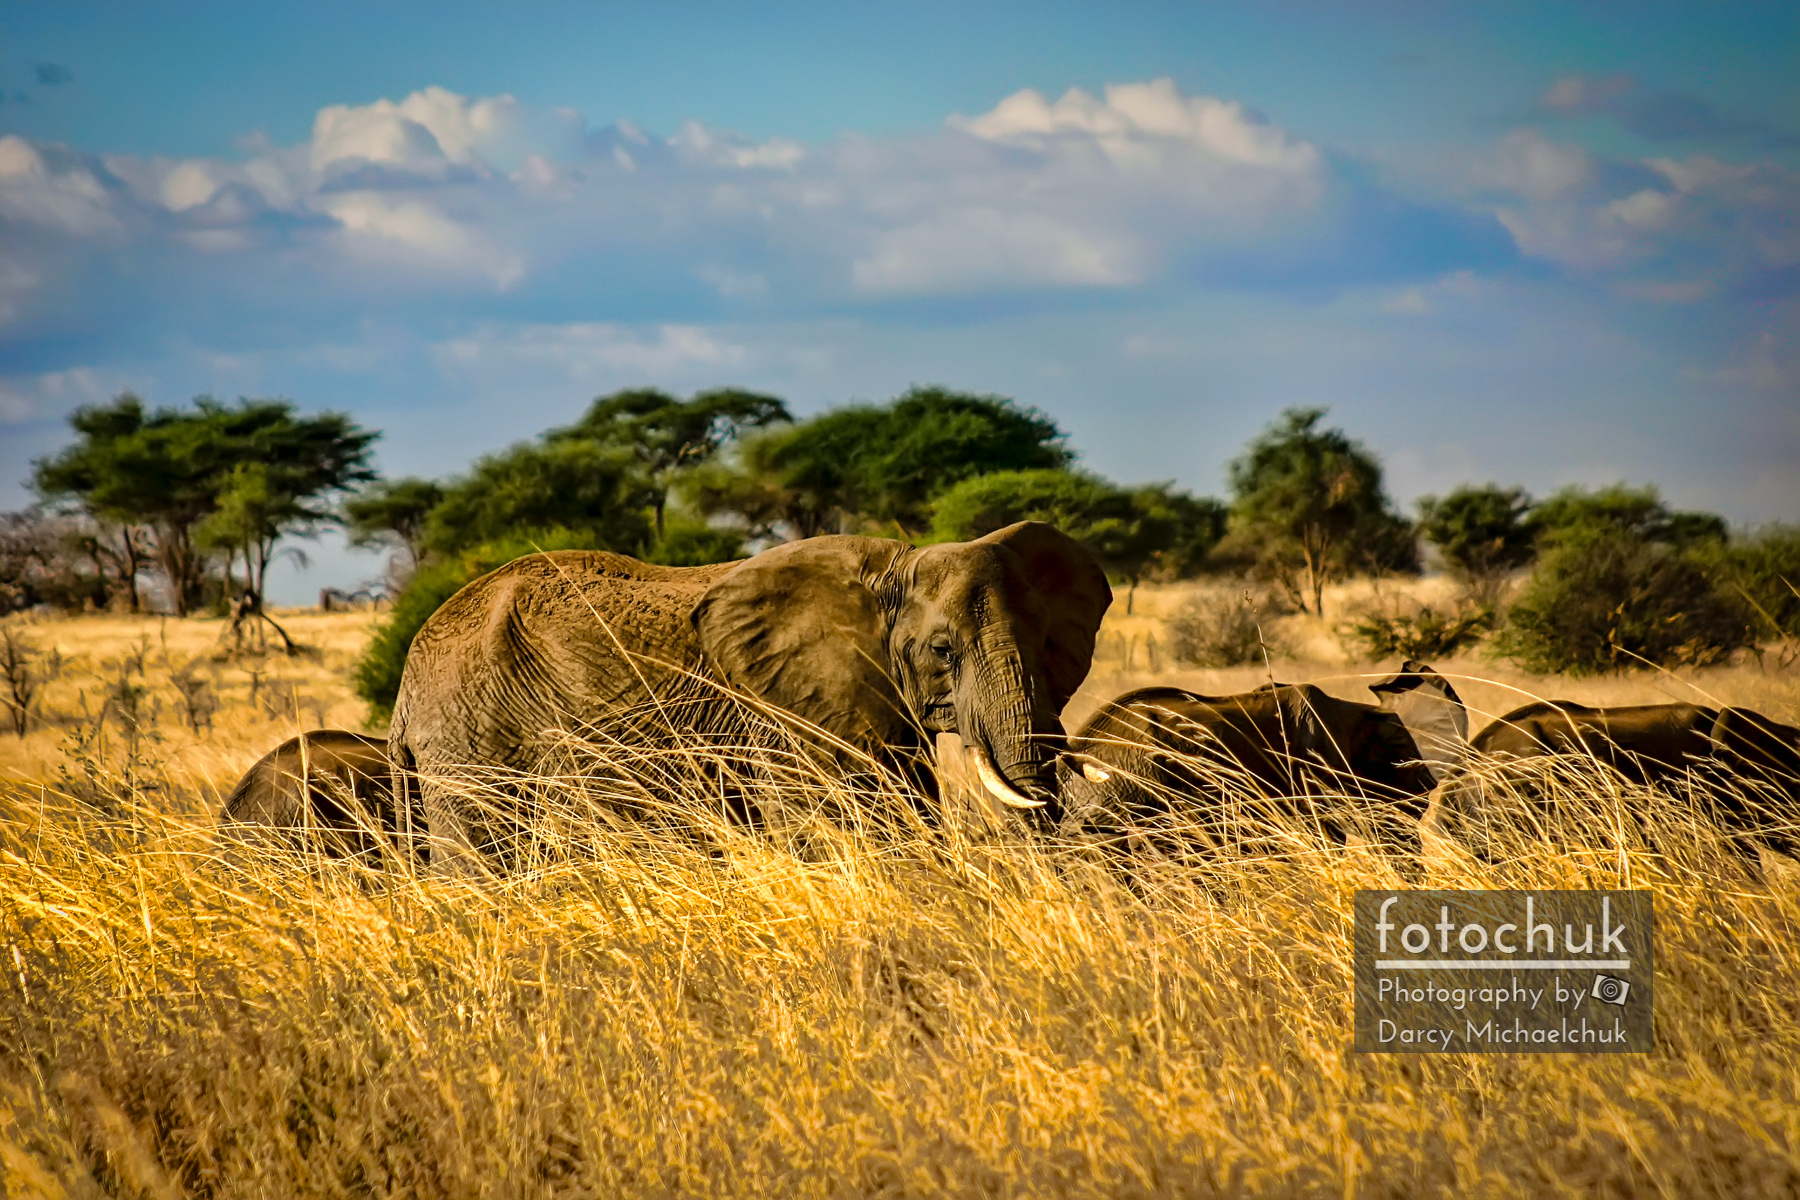 Elephant Family in the Grass